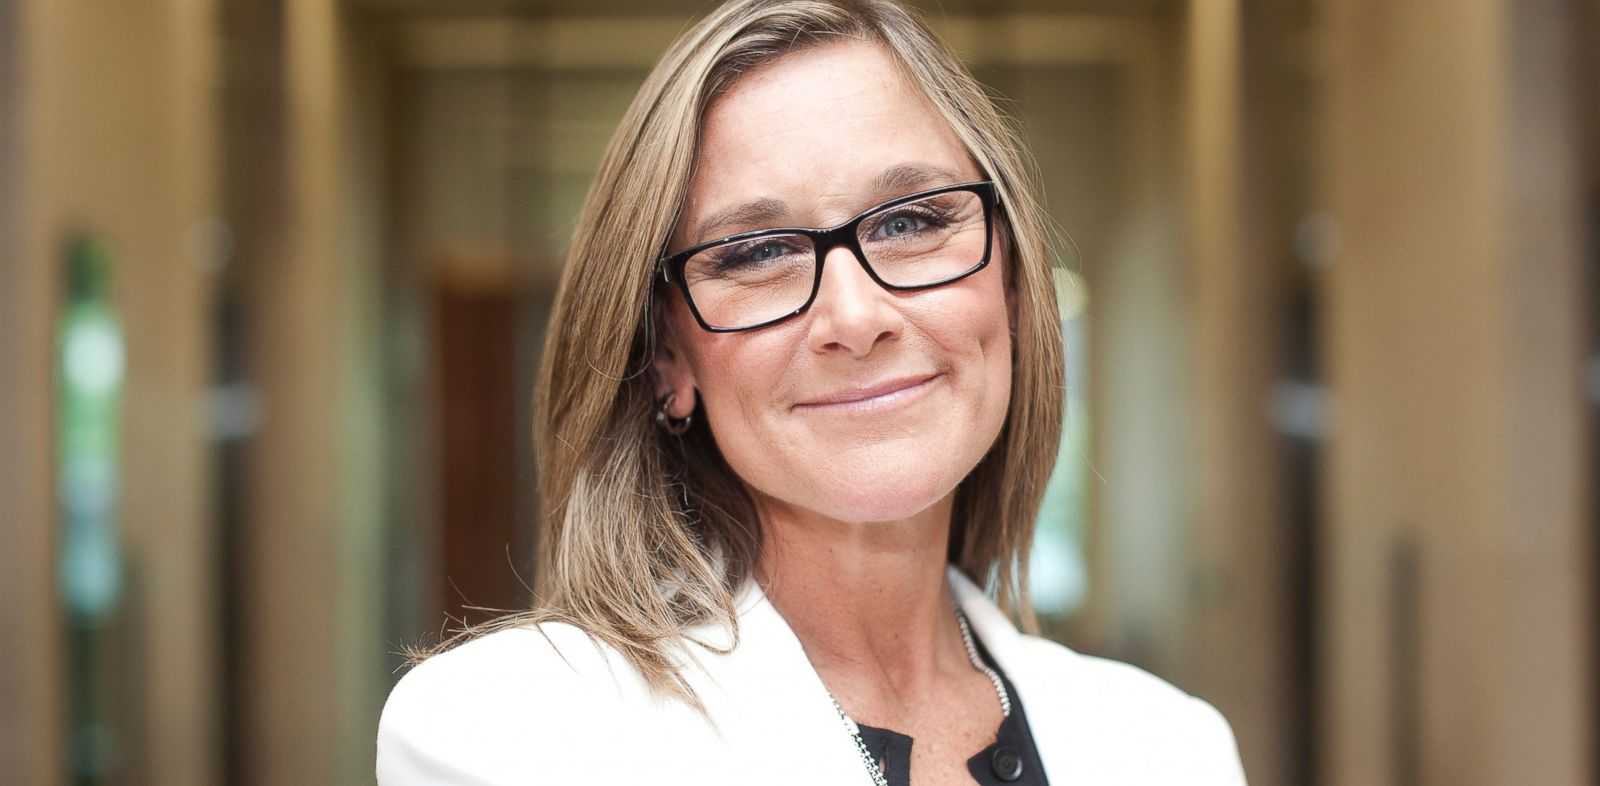 PHOTO: Angela Ahrendts, chief executive officer of Burberry Group, poses for a photograph at the London Stock Exchange Groups headquarters in London, July 19, 2012.